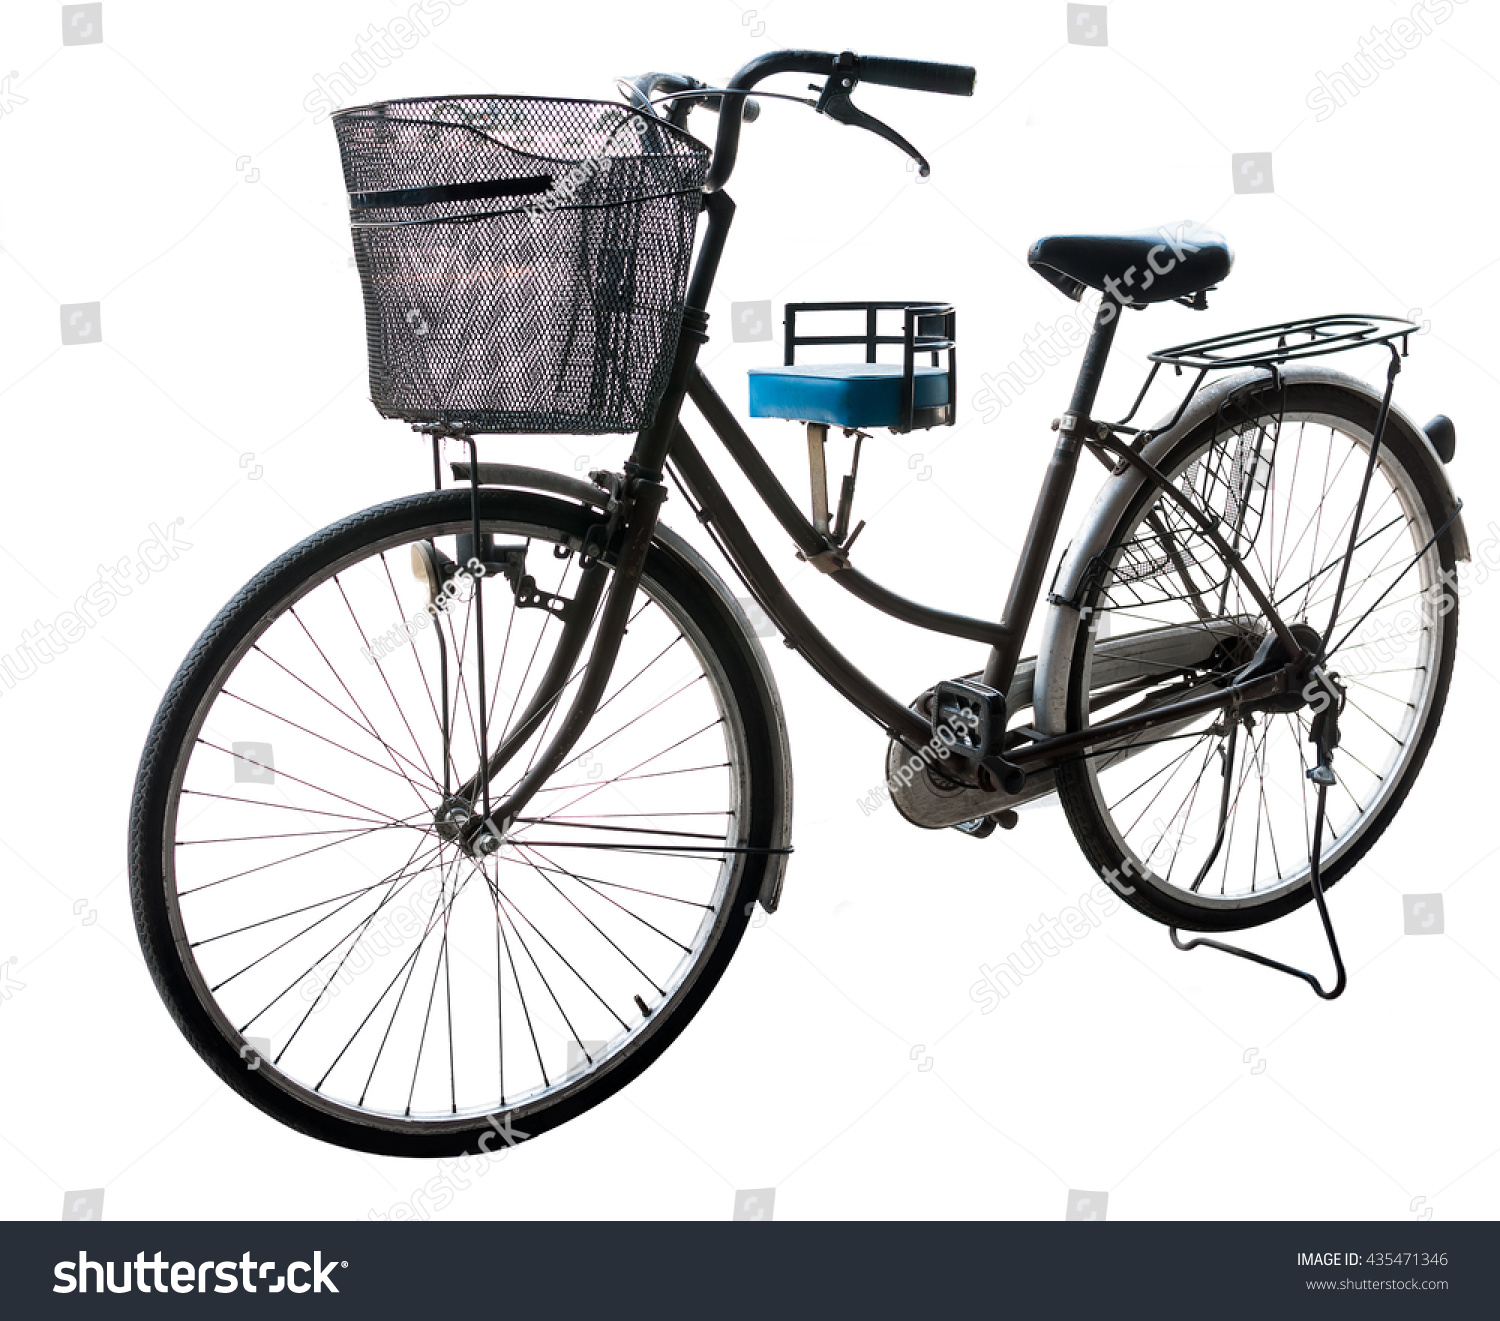 7b4ddf18d2e Black old bicycle vintage . black cycling isolated on white, grunge old bike  on white